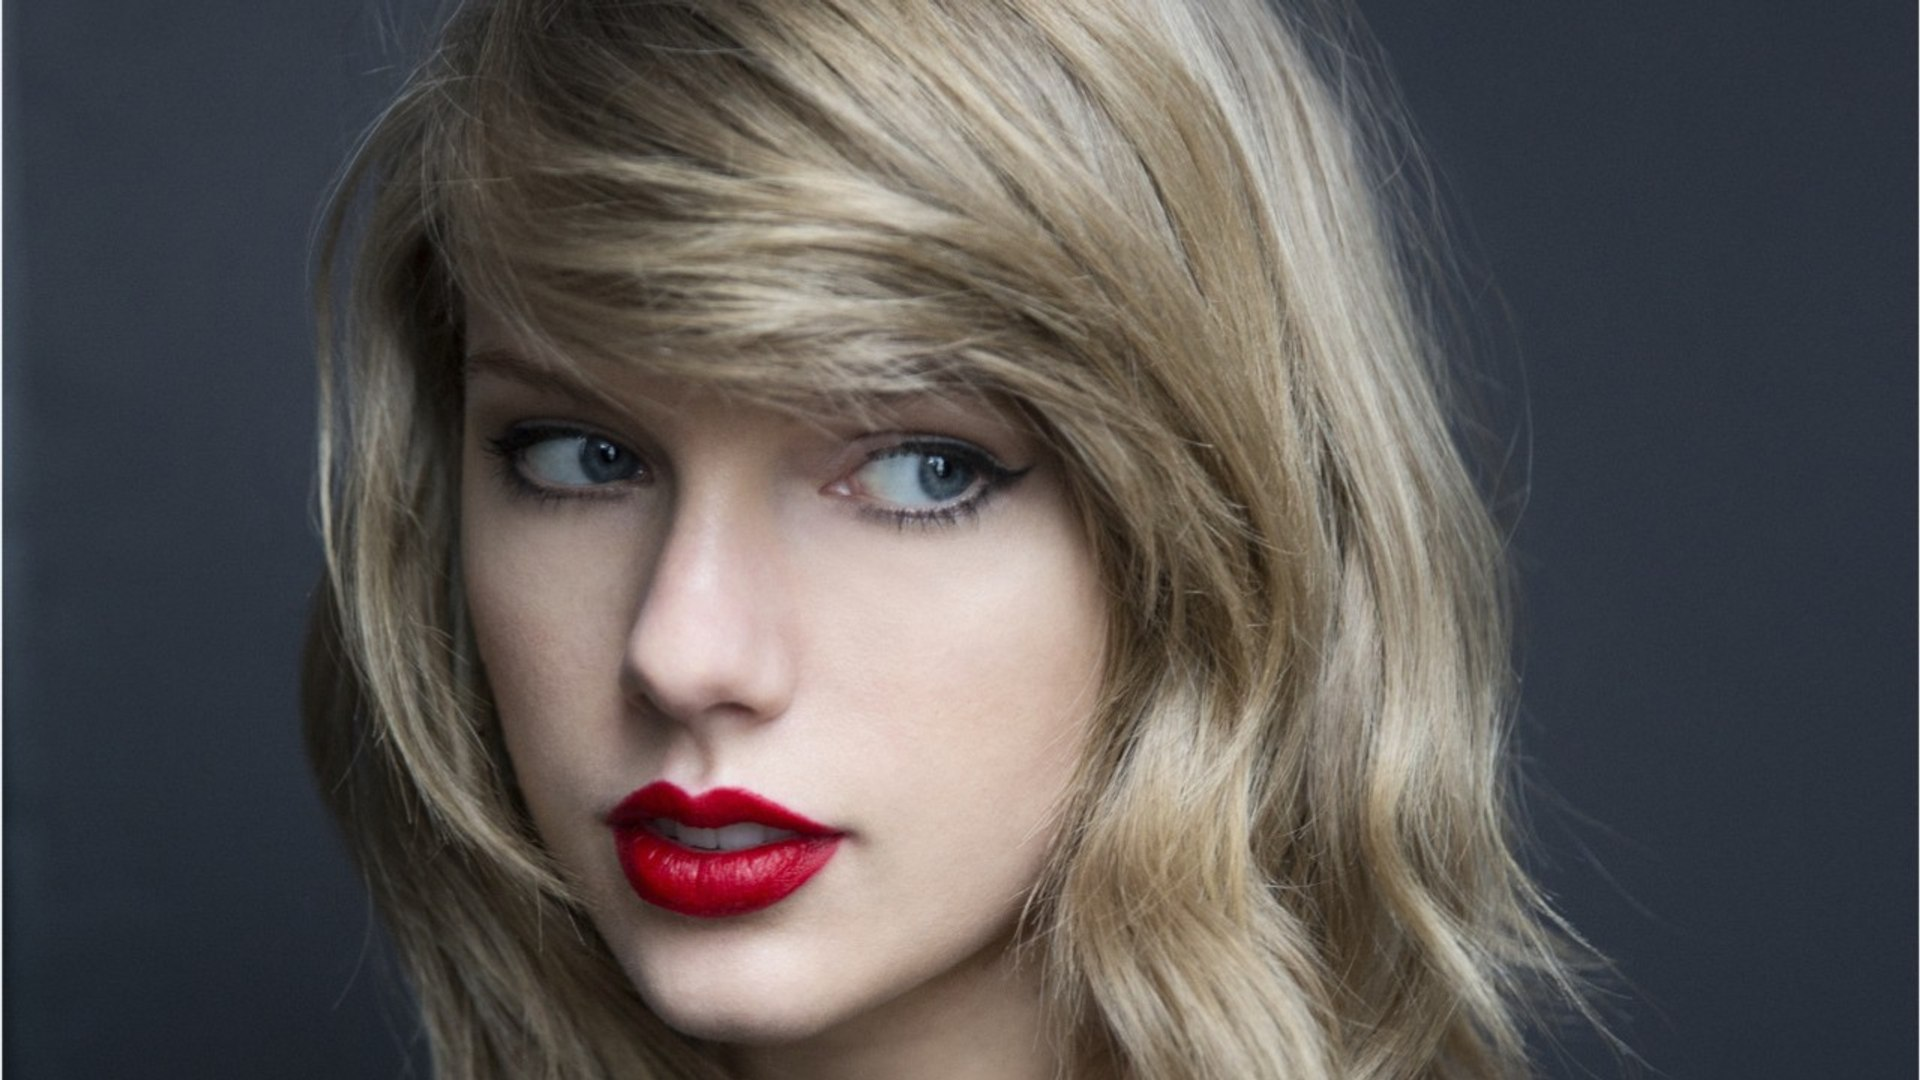 Taylor Swift Has Her Own App The Swift Life – See The Preview!